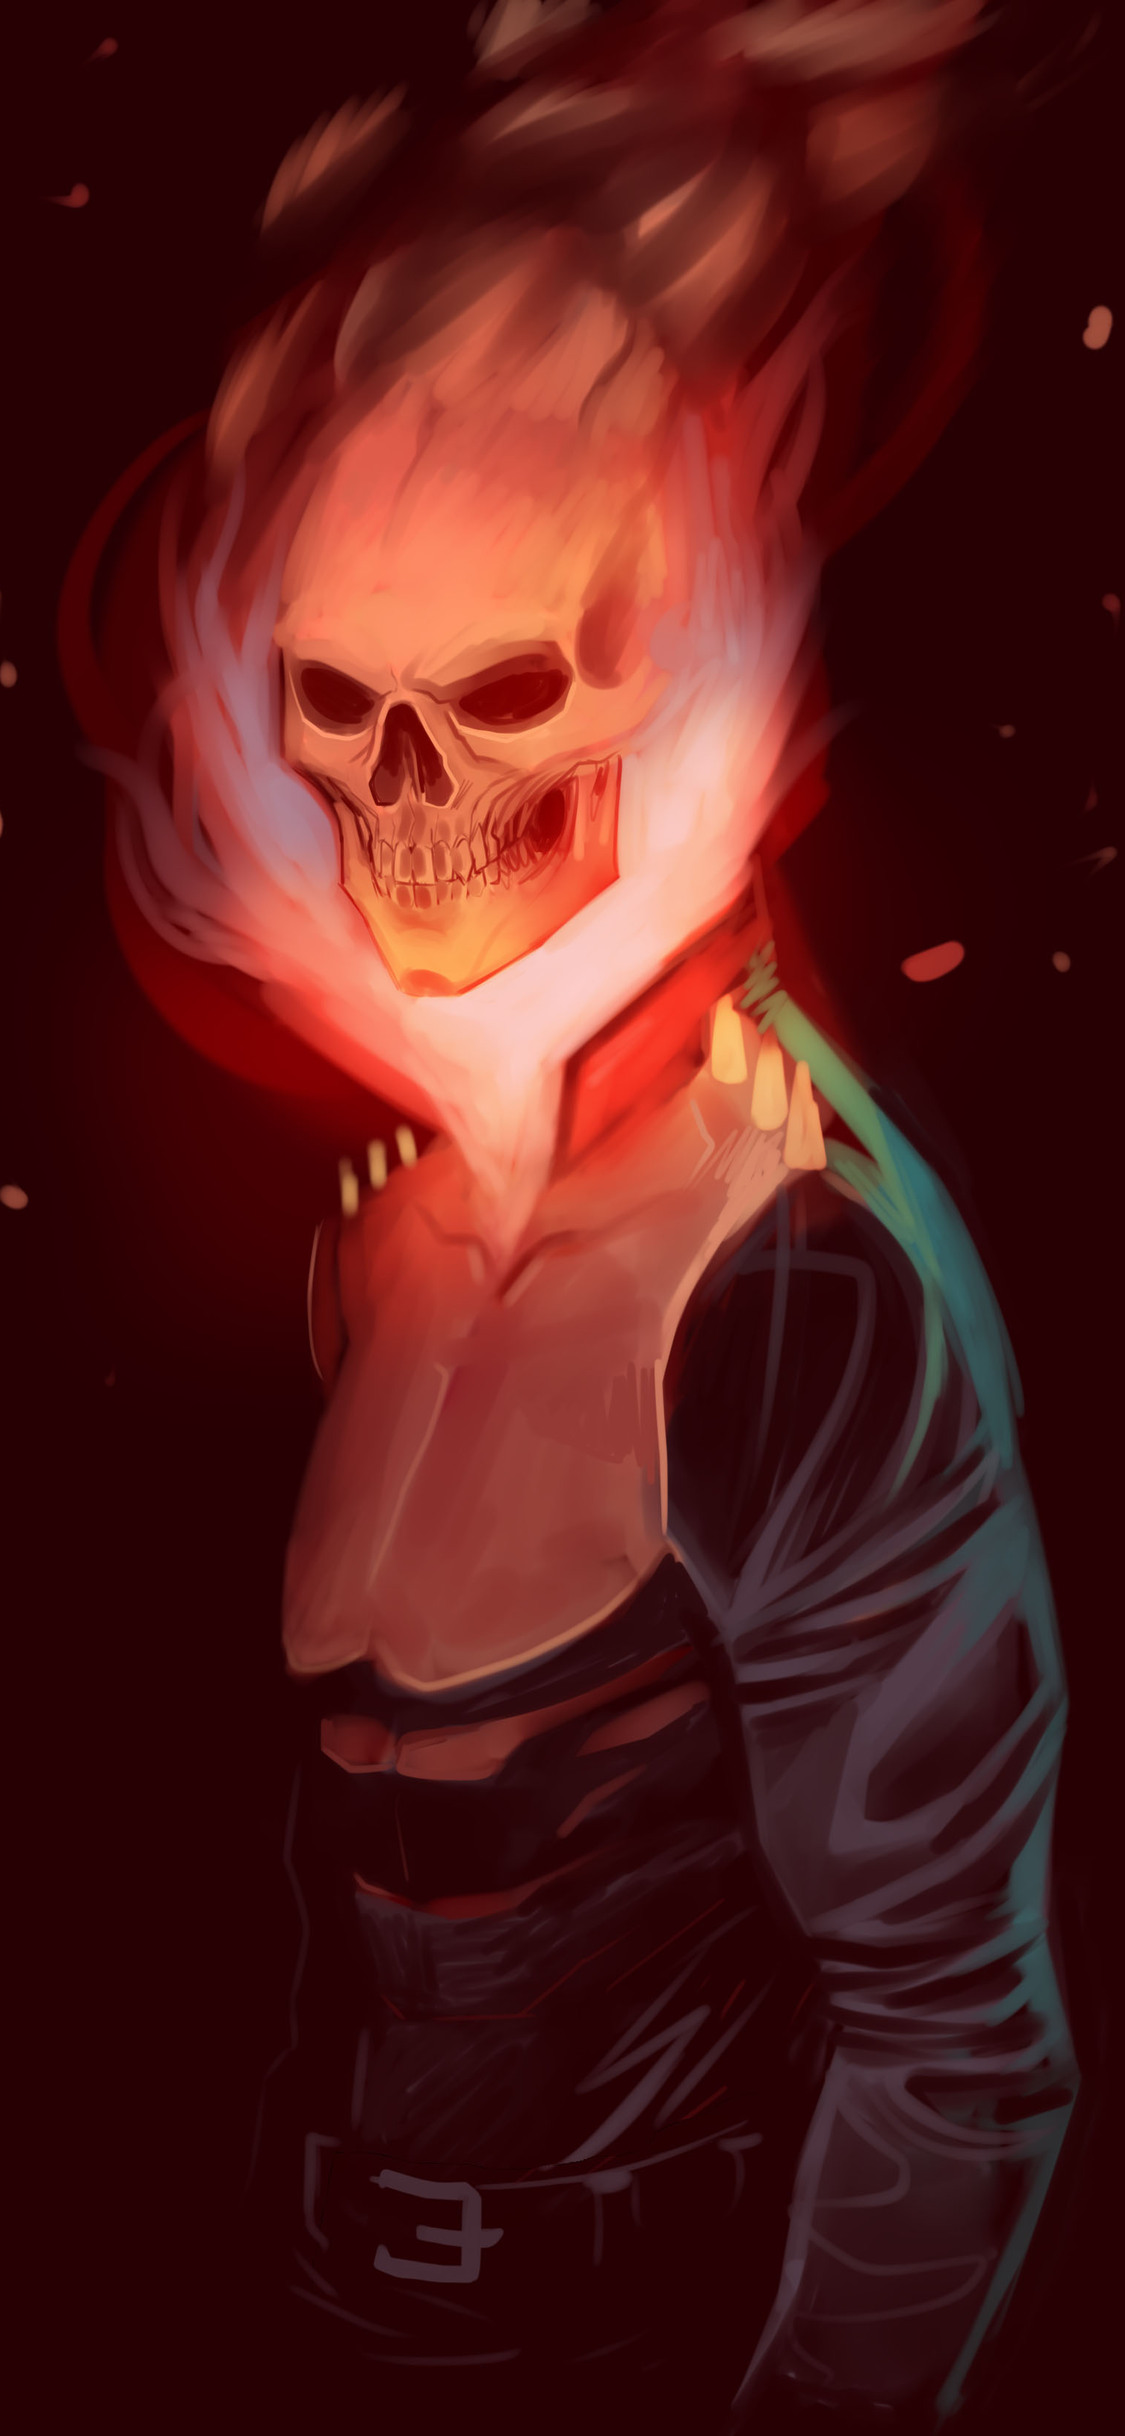 ghost-rider-digital-art-g6.jpg